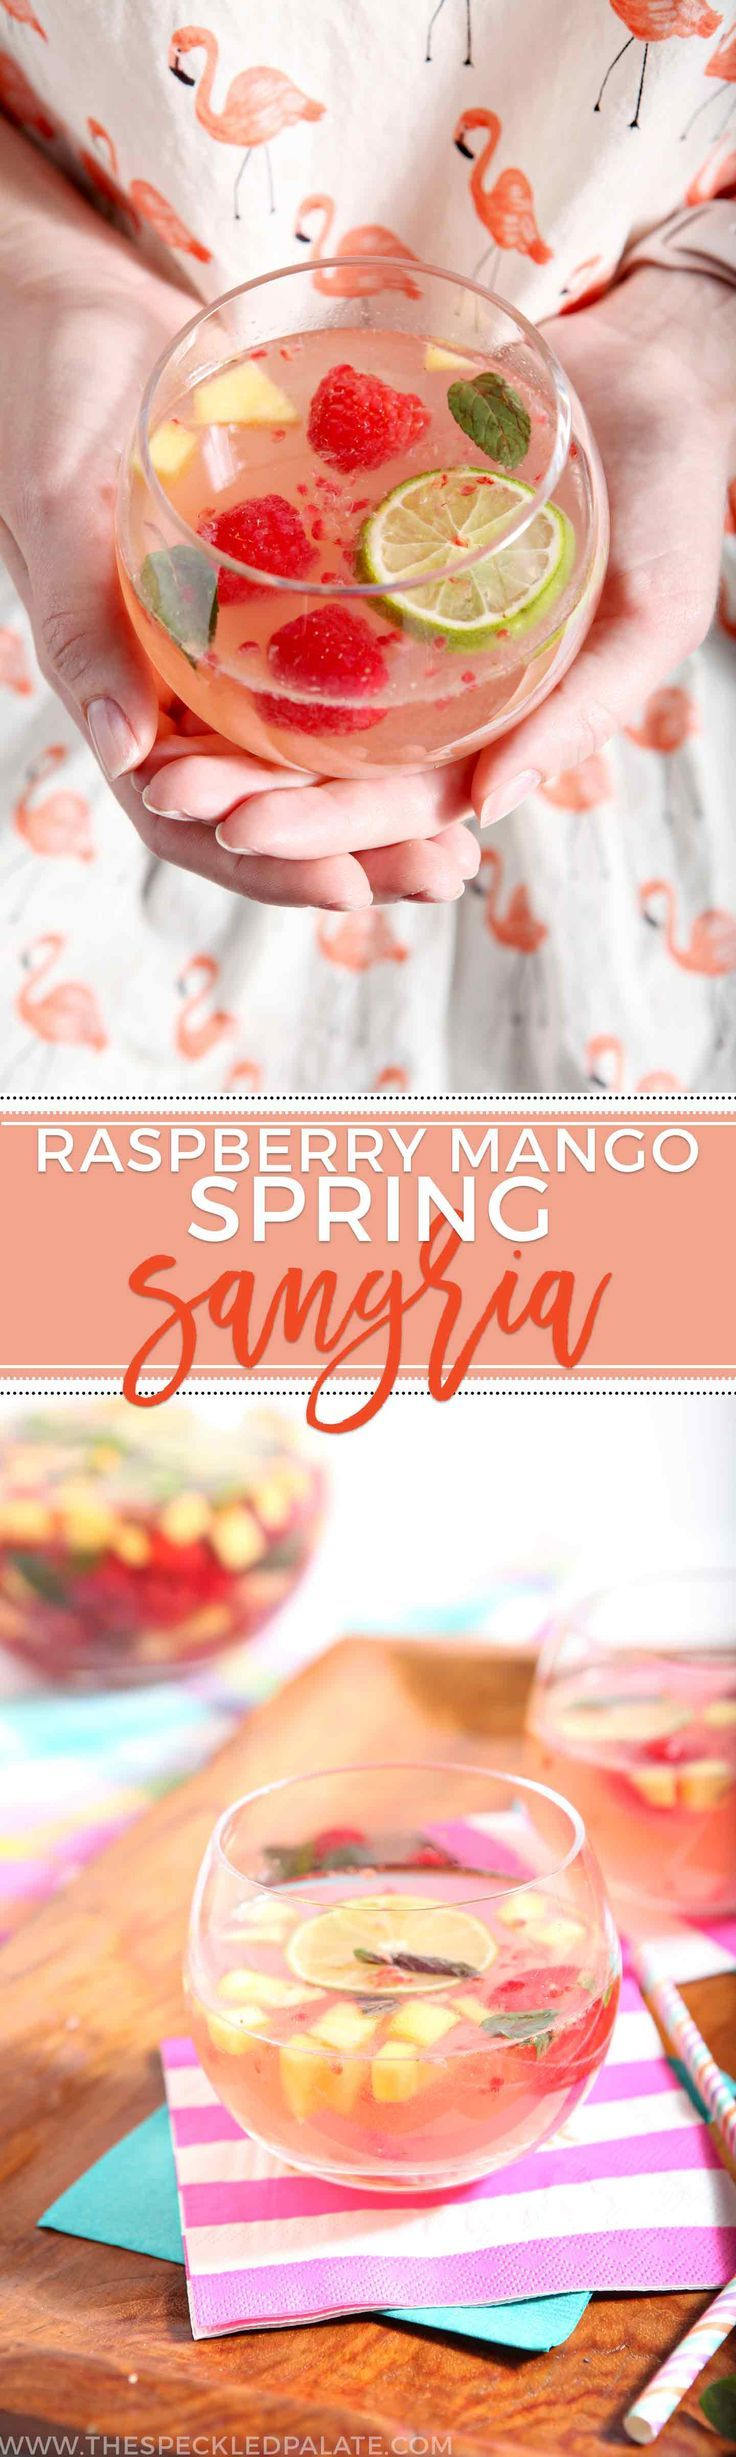 Raspberry Mango Spring Sangria sings of springtime flavors! Gather friends for this delightfully simple sangria that is oh-so-delicious, yet easy to make. #recipe #cocktail